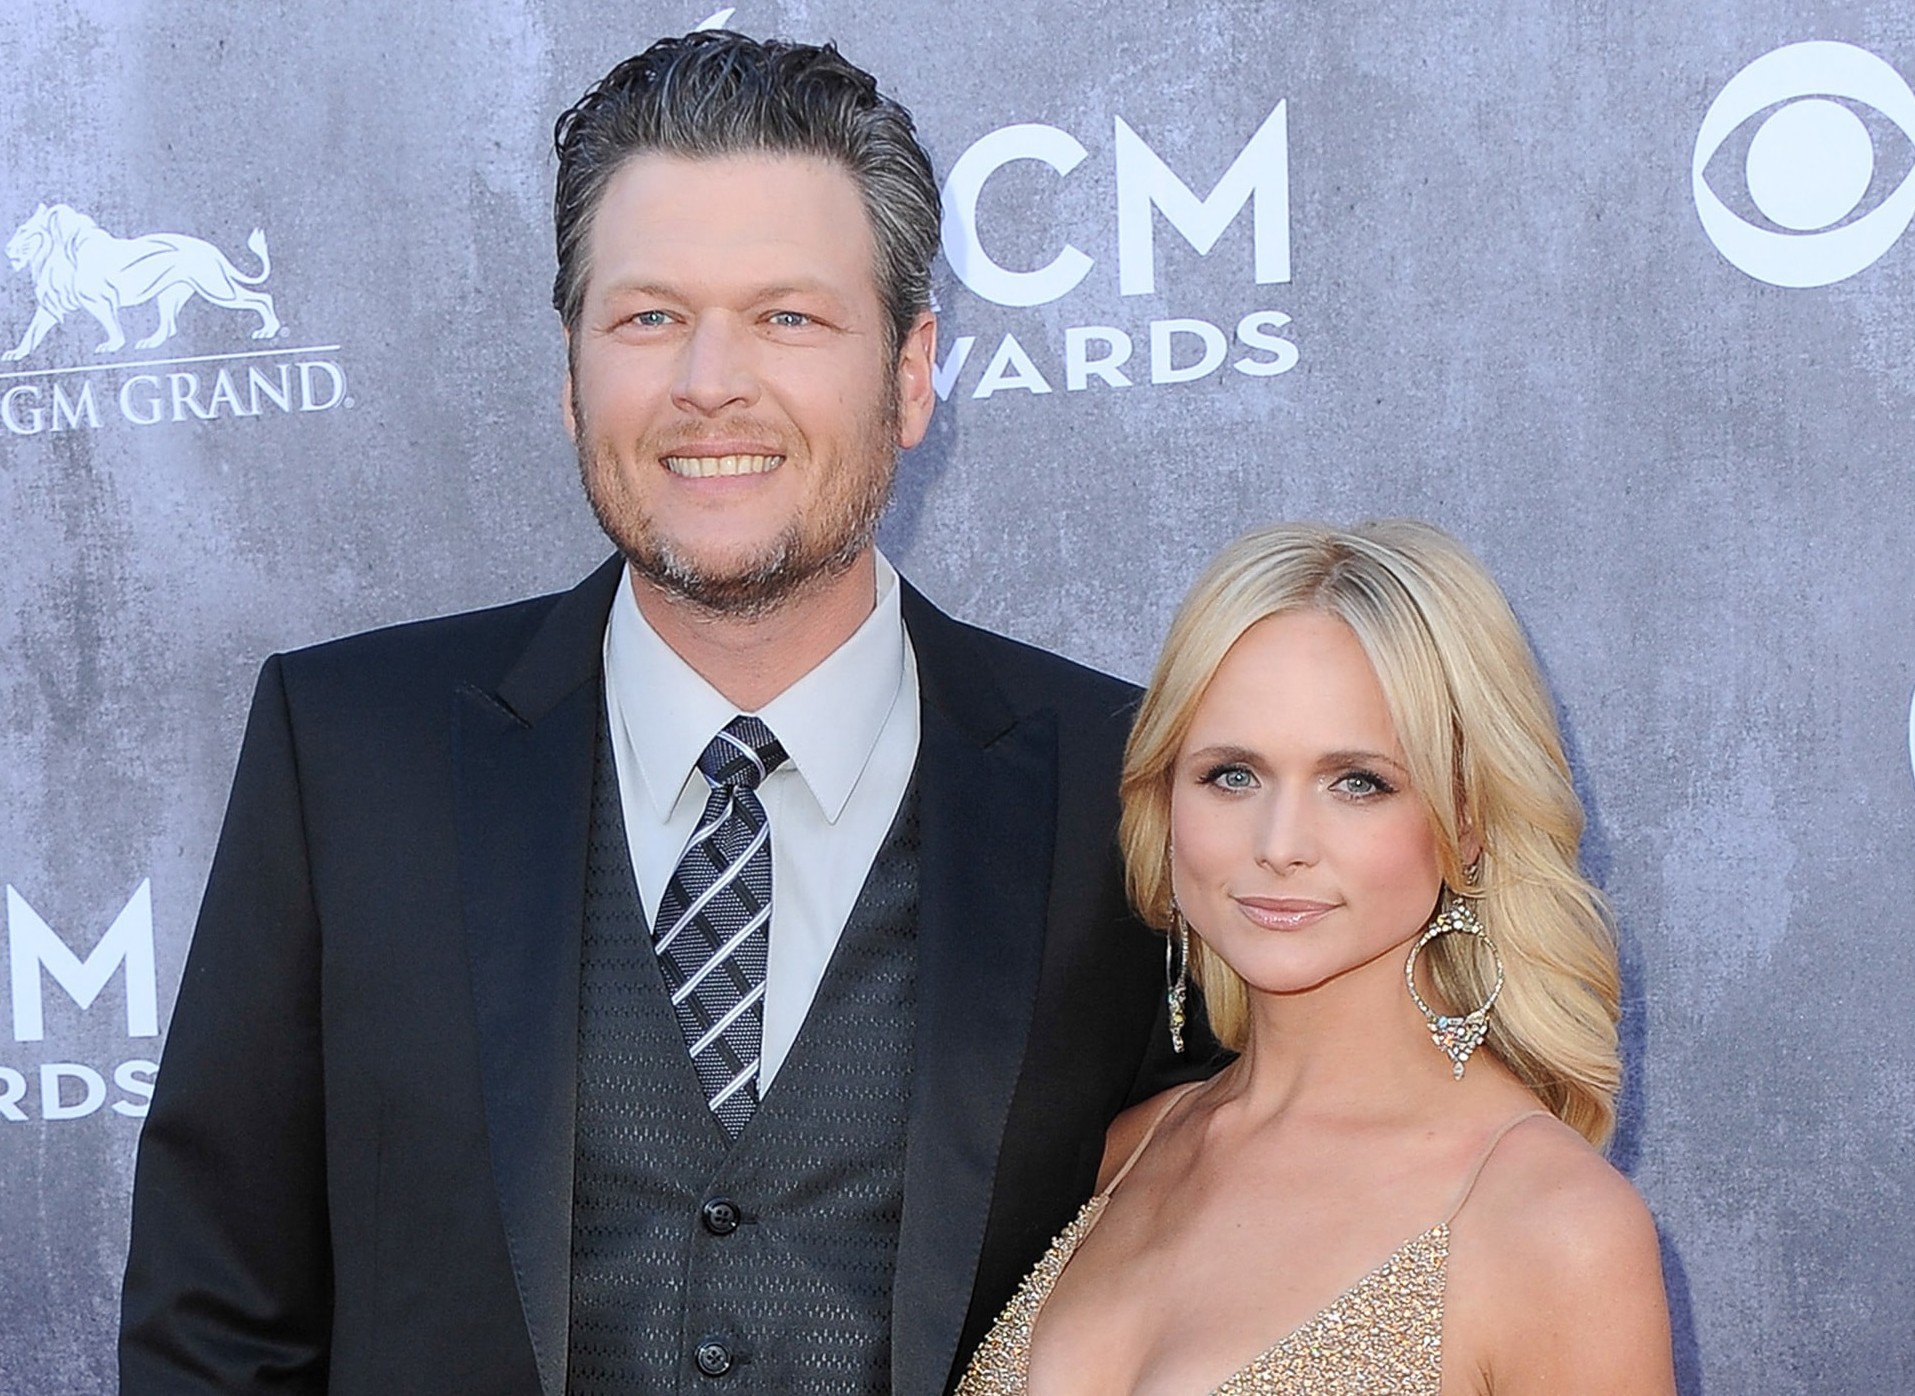 Click through to see some of the reactions to Blake Shelton taking a dig at Miranda Lambert. Be careful, though! This tea is exceptionally hot. (Photo: WENN)